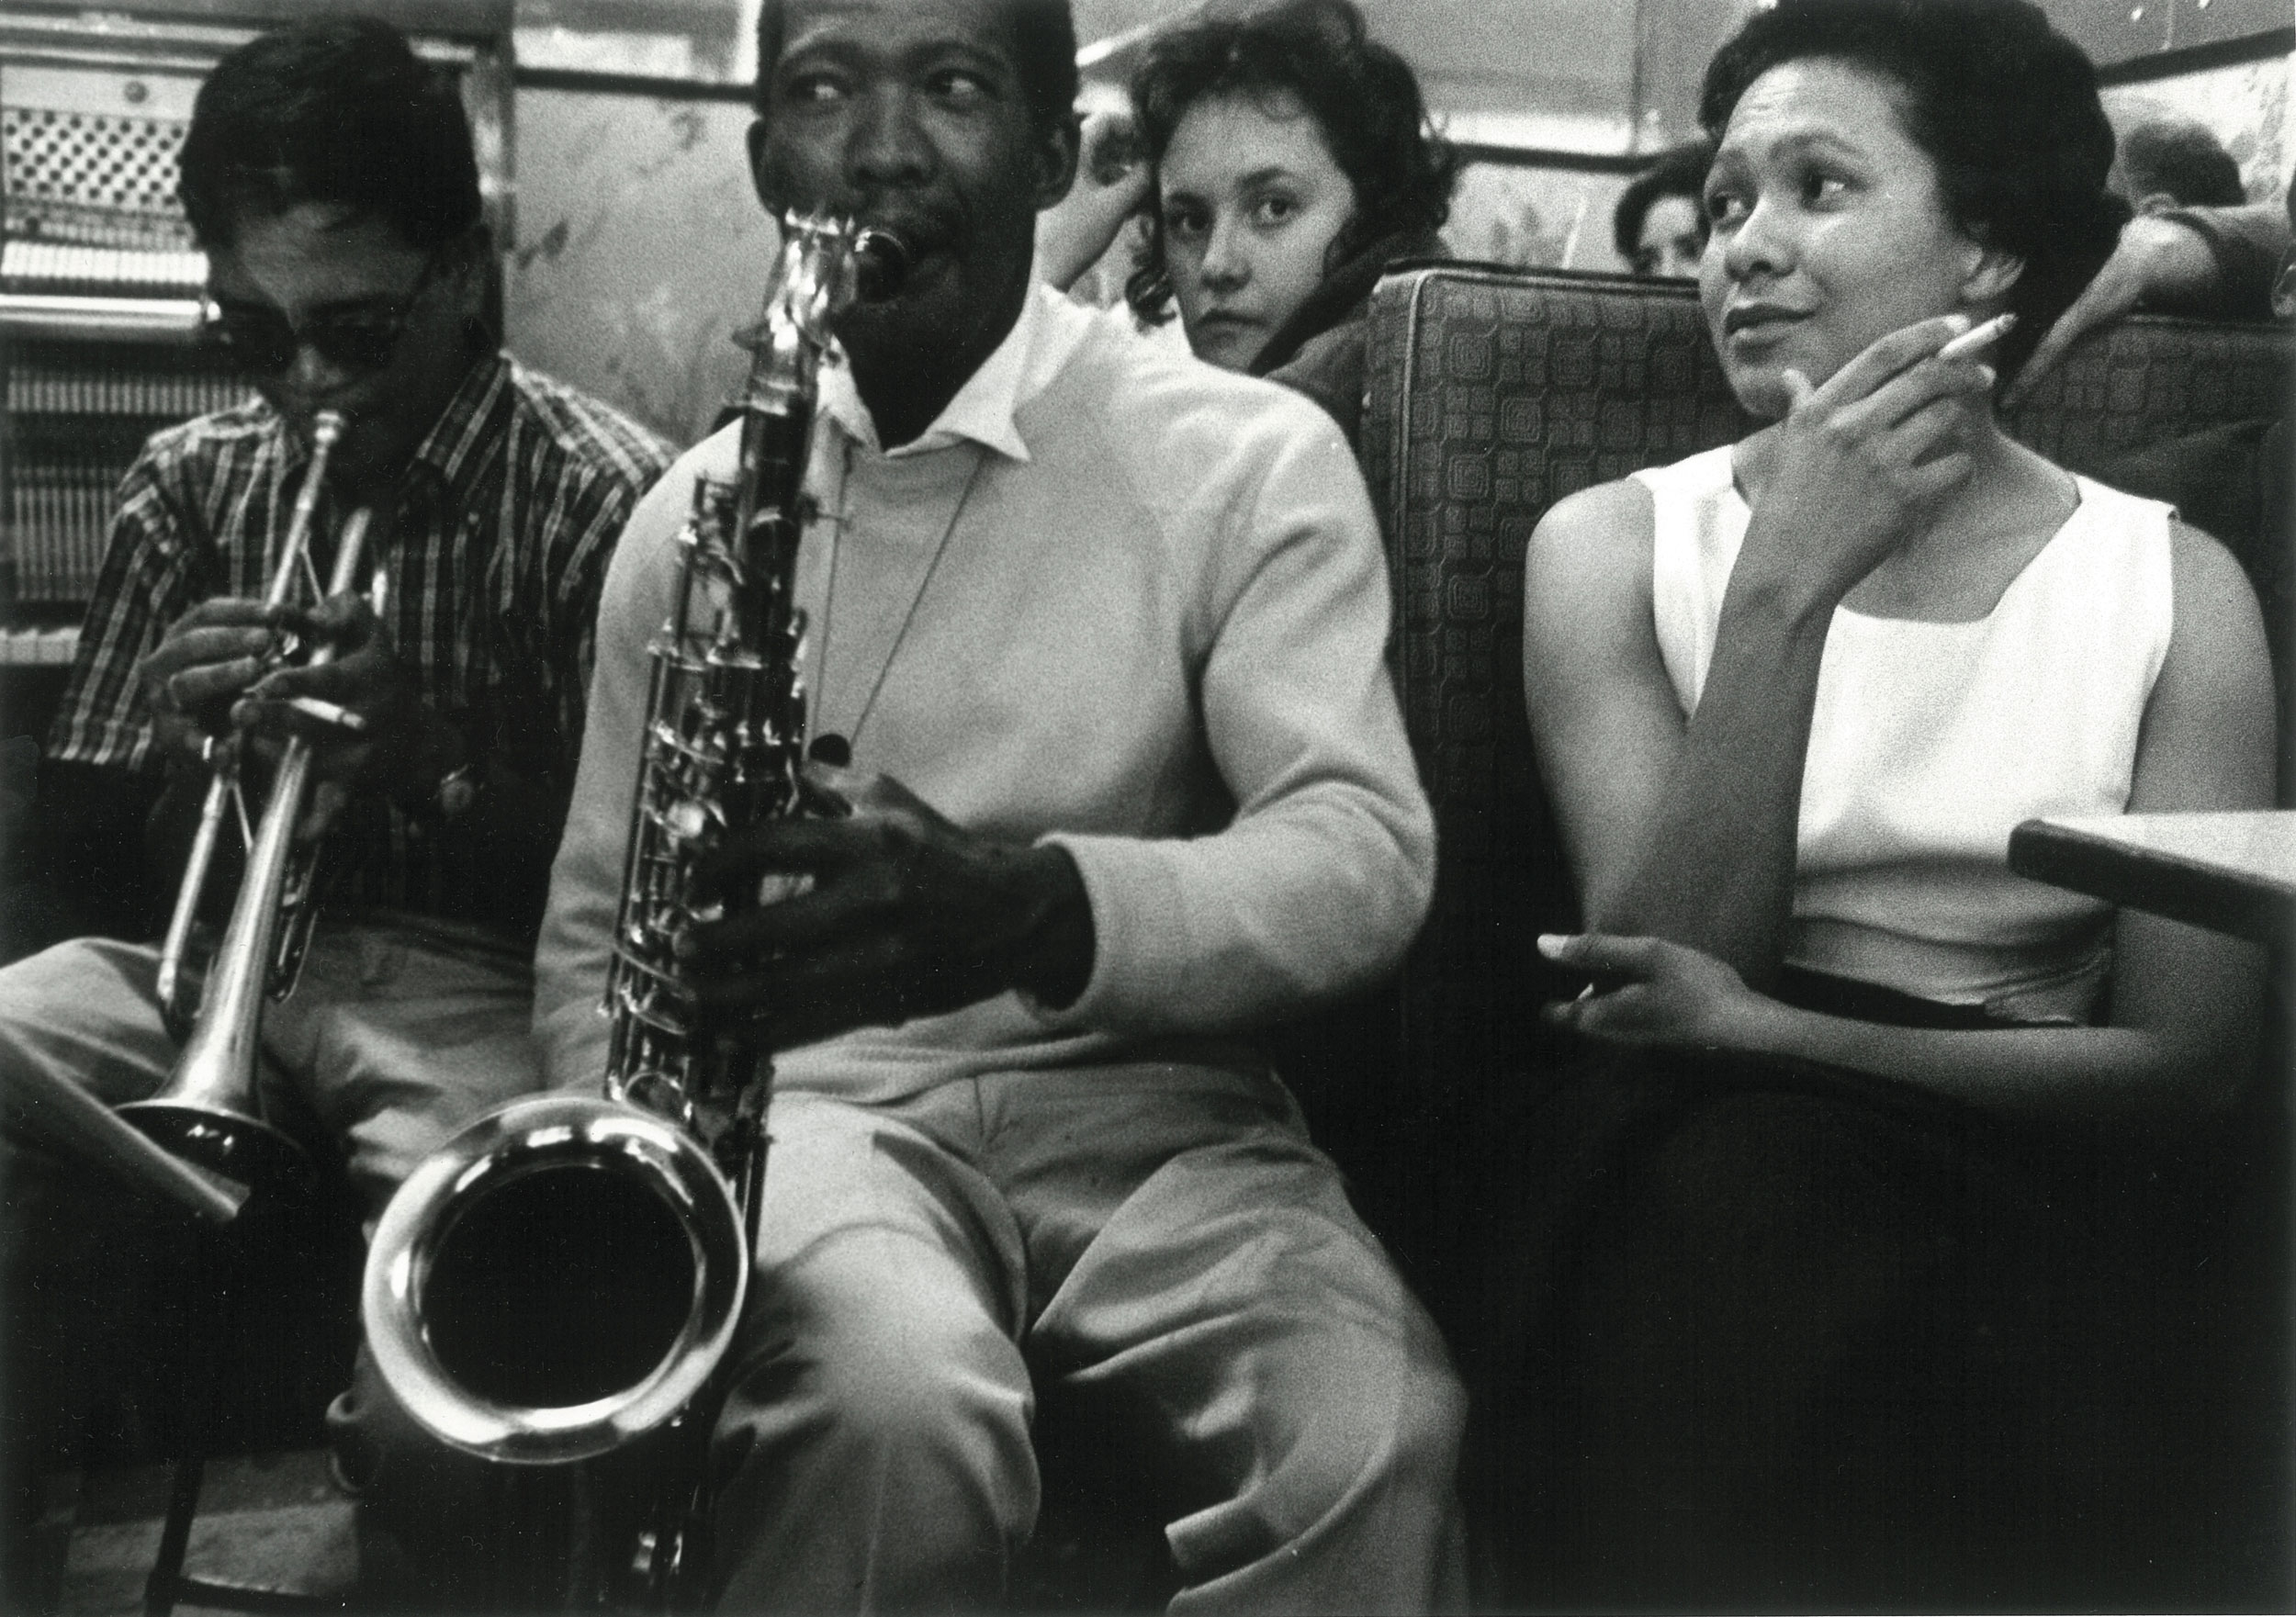 1958 – Lennie Lee and Kippie Moeketsi   Courtesy of the Estate of John Goldblatt